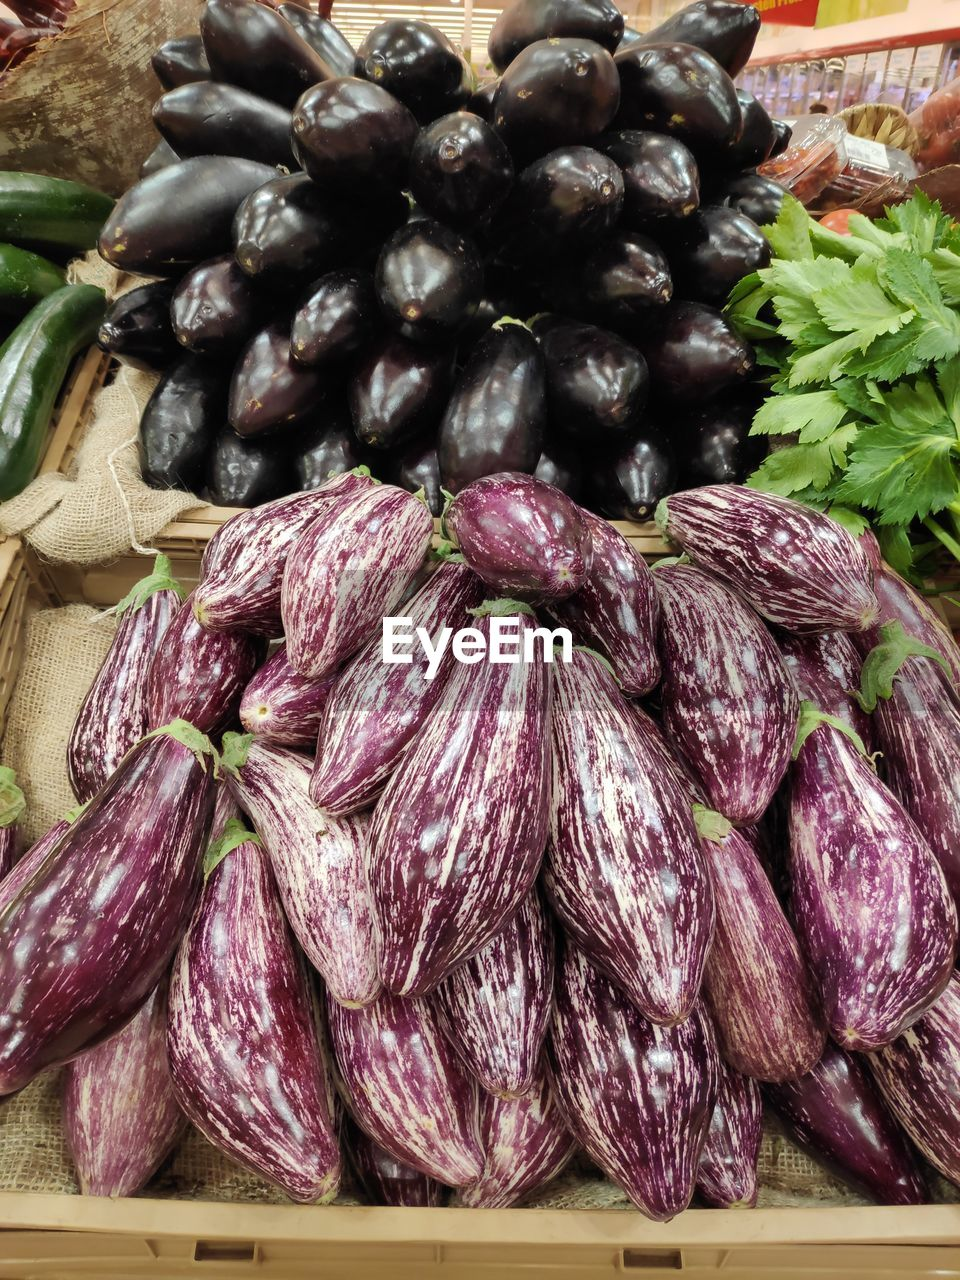 food and drink, food, freshness, healthy eating, vegetable, market, still life, wellbeing, large group of objects, raw food, for sale, no people, retail, abundance, eggplant, business, market stall, green color, indoors, heap, purple, retail display, street market